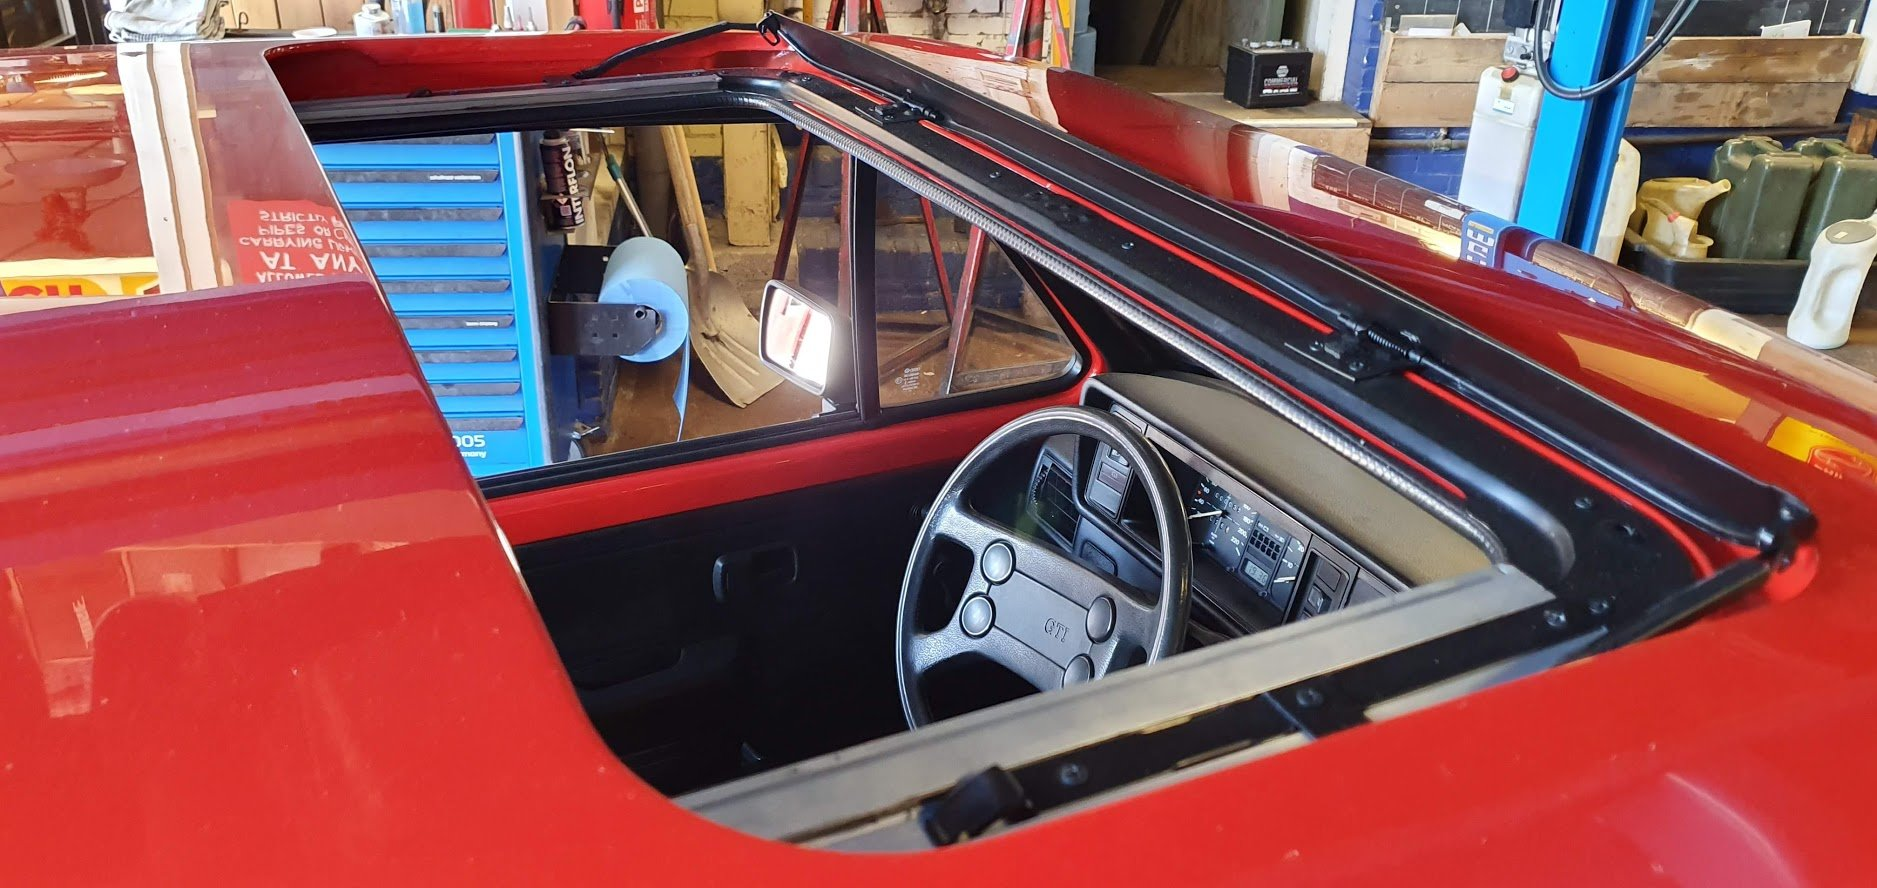 1983 Golf, Golf Gti, VW Golf, Gti For Hire (picture 4 of 6)